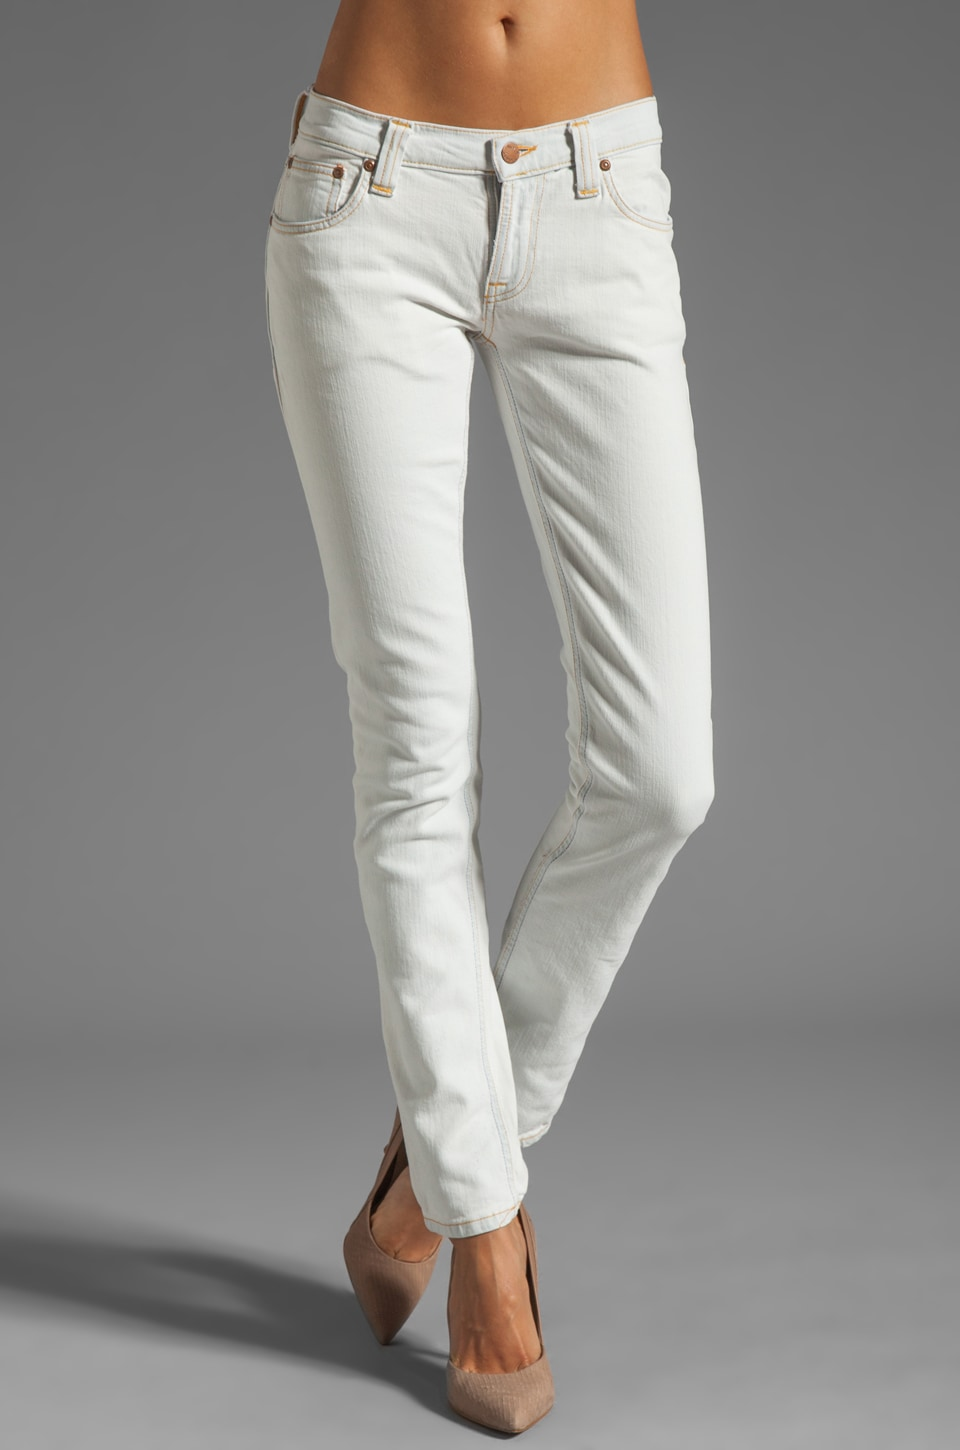 Nudie Jeans Tight Long John in Organic Bleach White